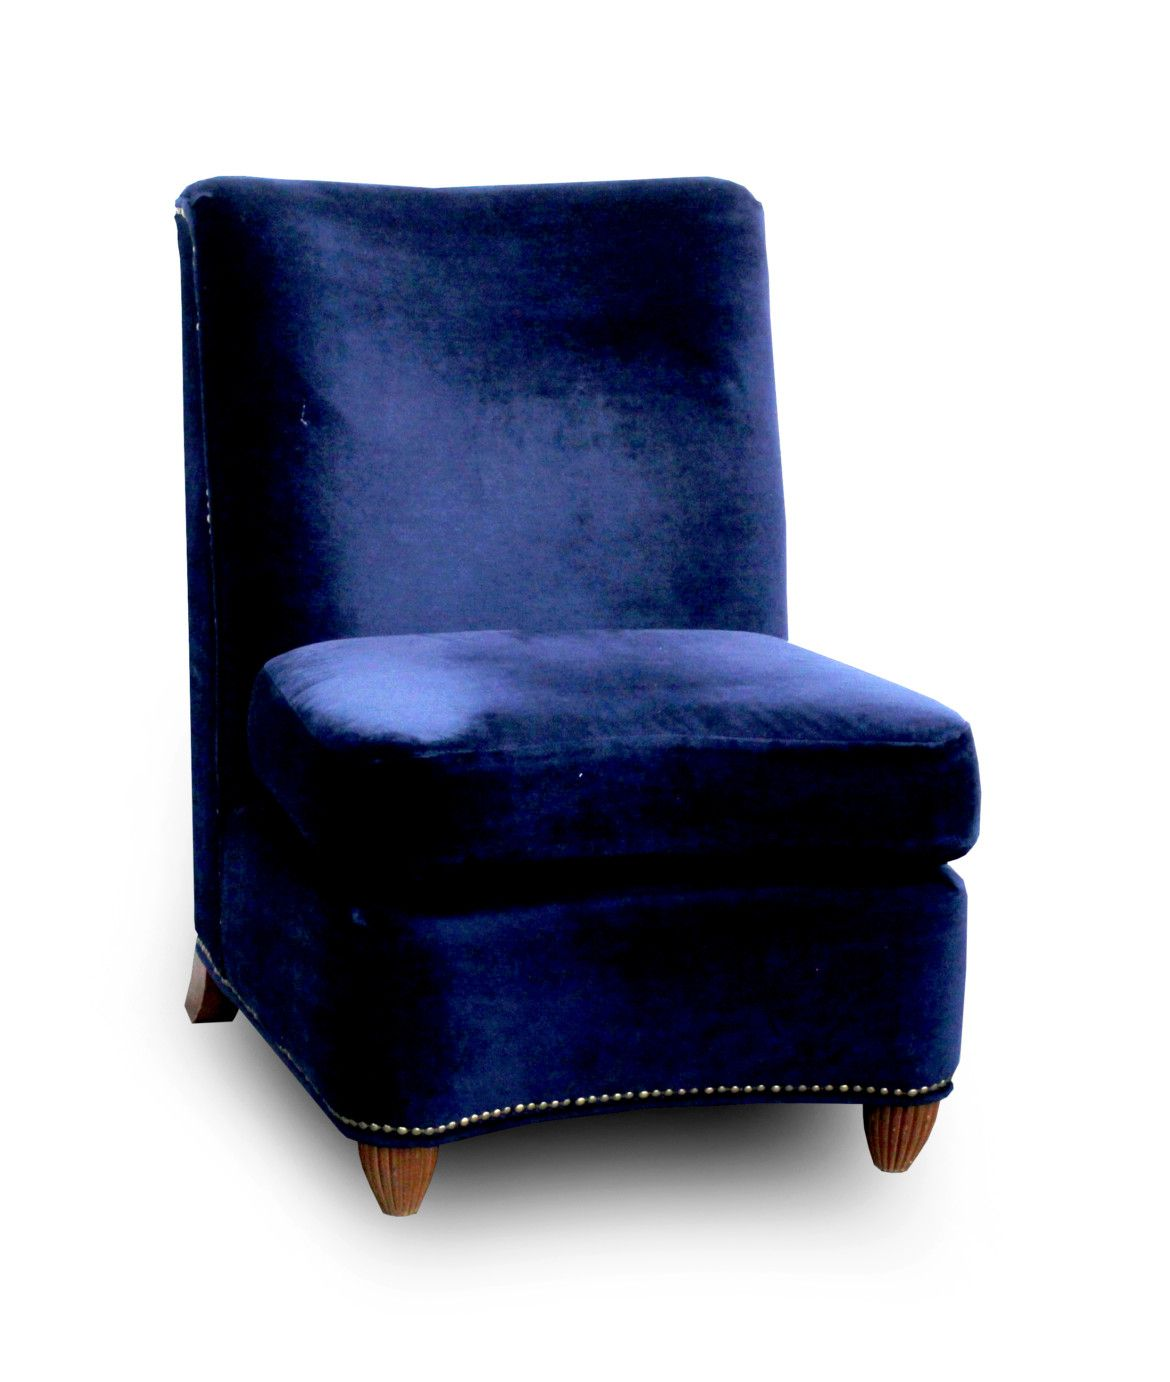 Midnight Blue Armless Chair Was $99, Now $79